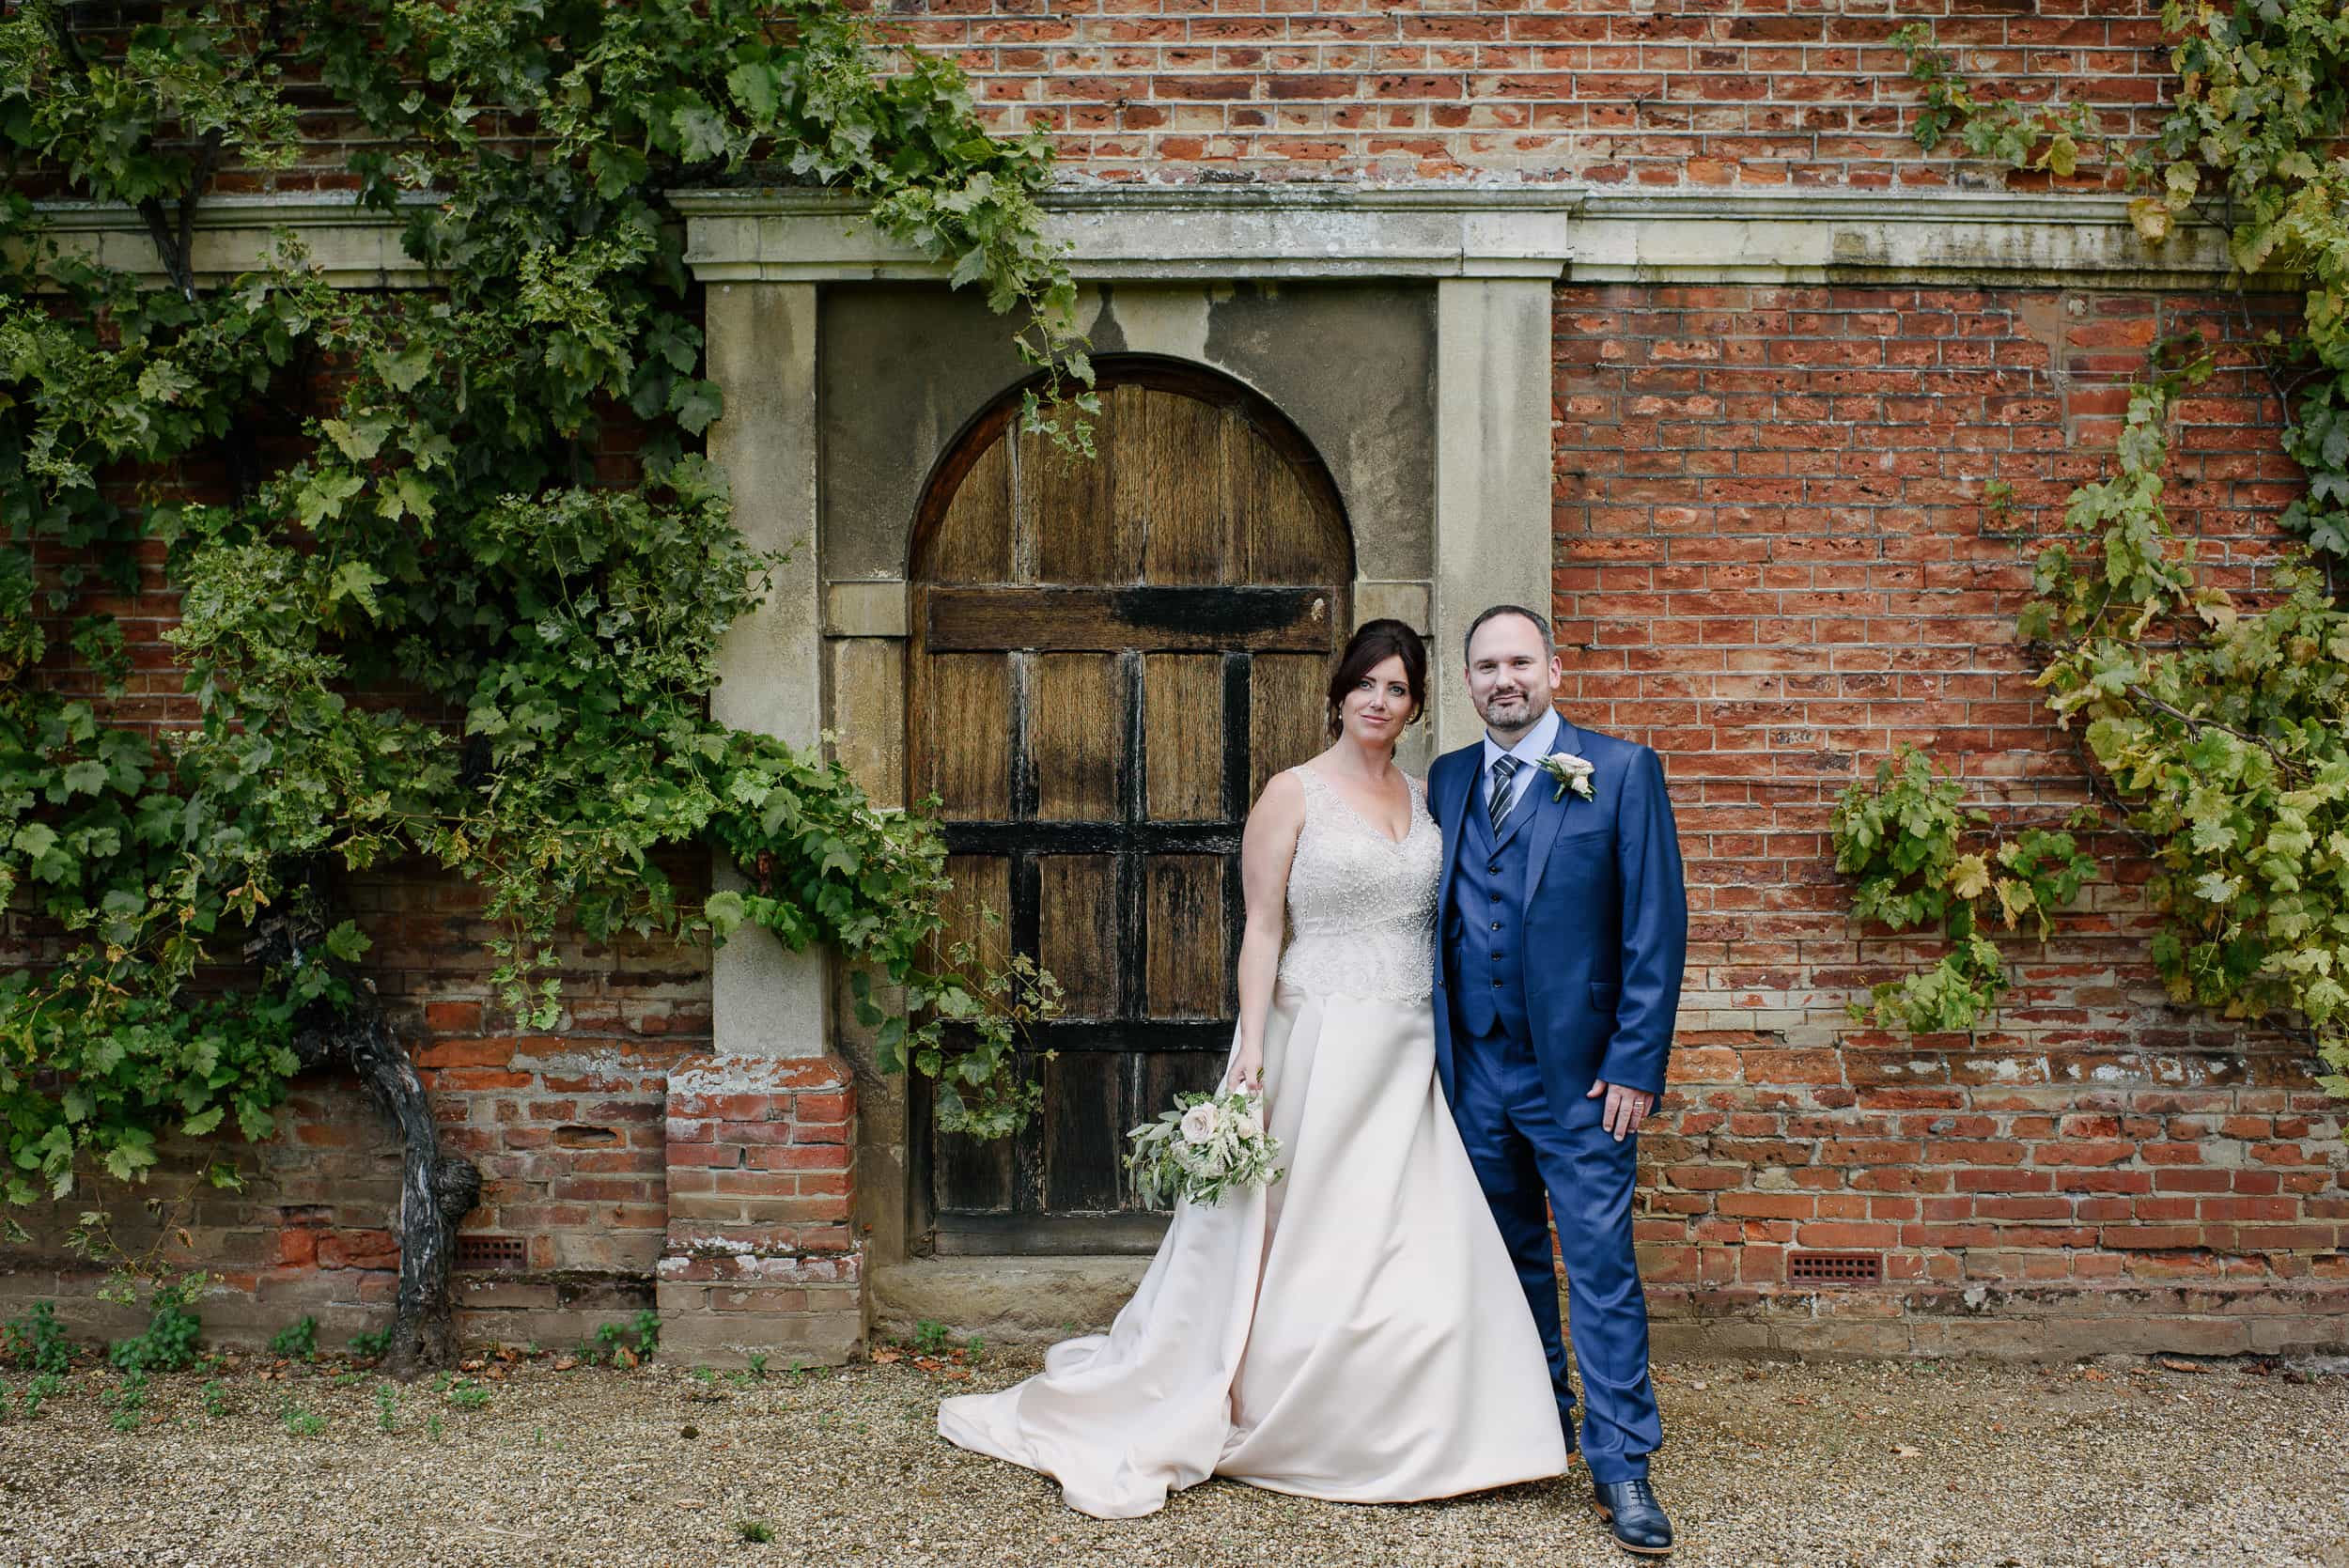 Suzy & Mike - Blickling Hall Wedding 26